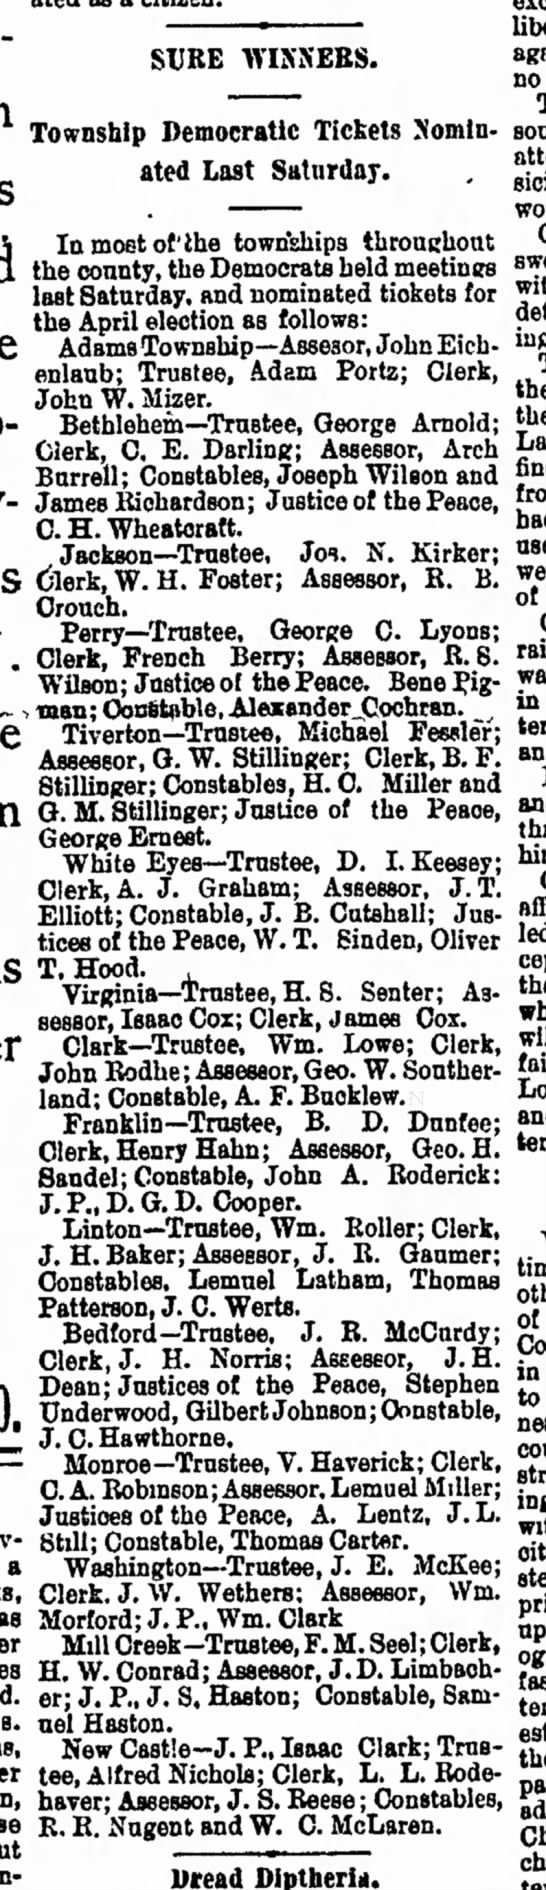 Justice of the Peace - William Thomas Sinden, The Democratic Standard, 16 Mar 1894, p. 1 -